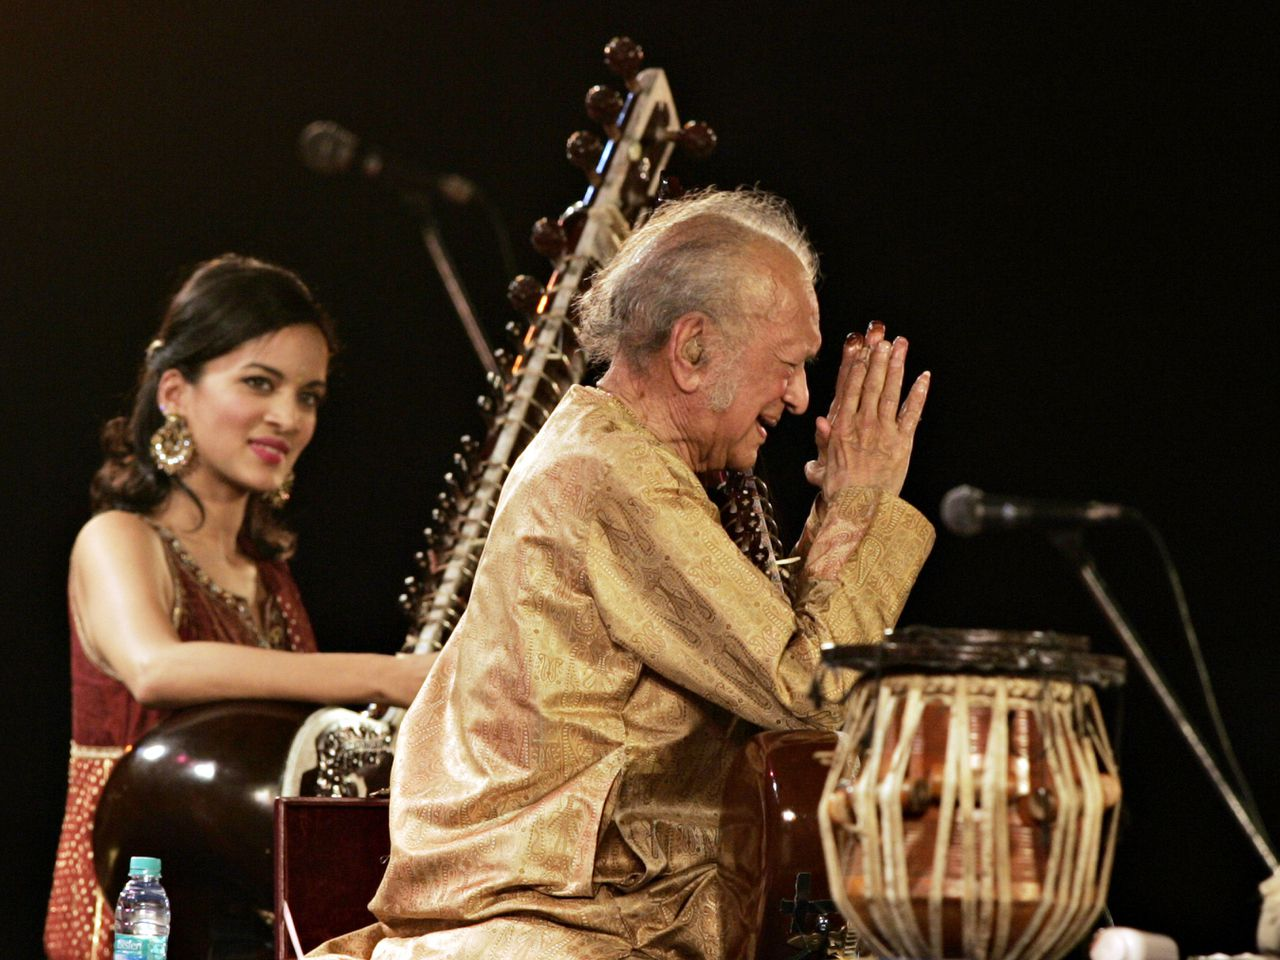 (FILES) In this photograph taken on February 7, 2009, Indian sitar maestro Ravi Shankar (R) gestures while his daughter Anoushka Shankar (L, background) looks on during a performance at The Dover Lane Music Conference in Kolkata. According to reports on Indian television channels on December 12, 2012, Ravi Shankar has died aged 92 in San Diego, California. AFP PHOTO/Deshakalyan CHOWDHURY/FILES